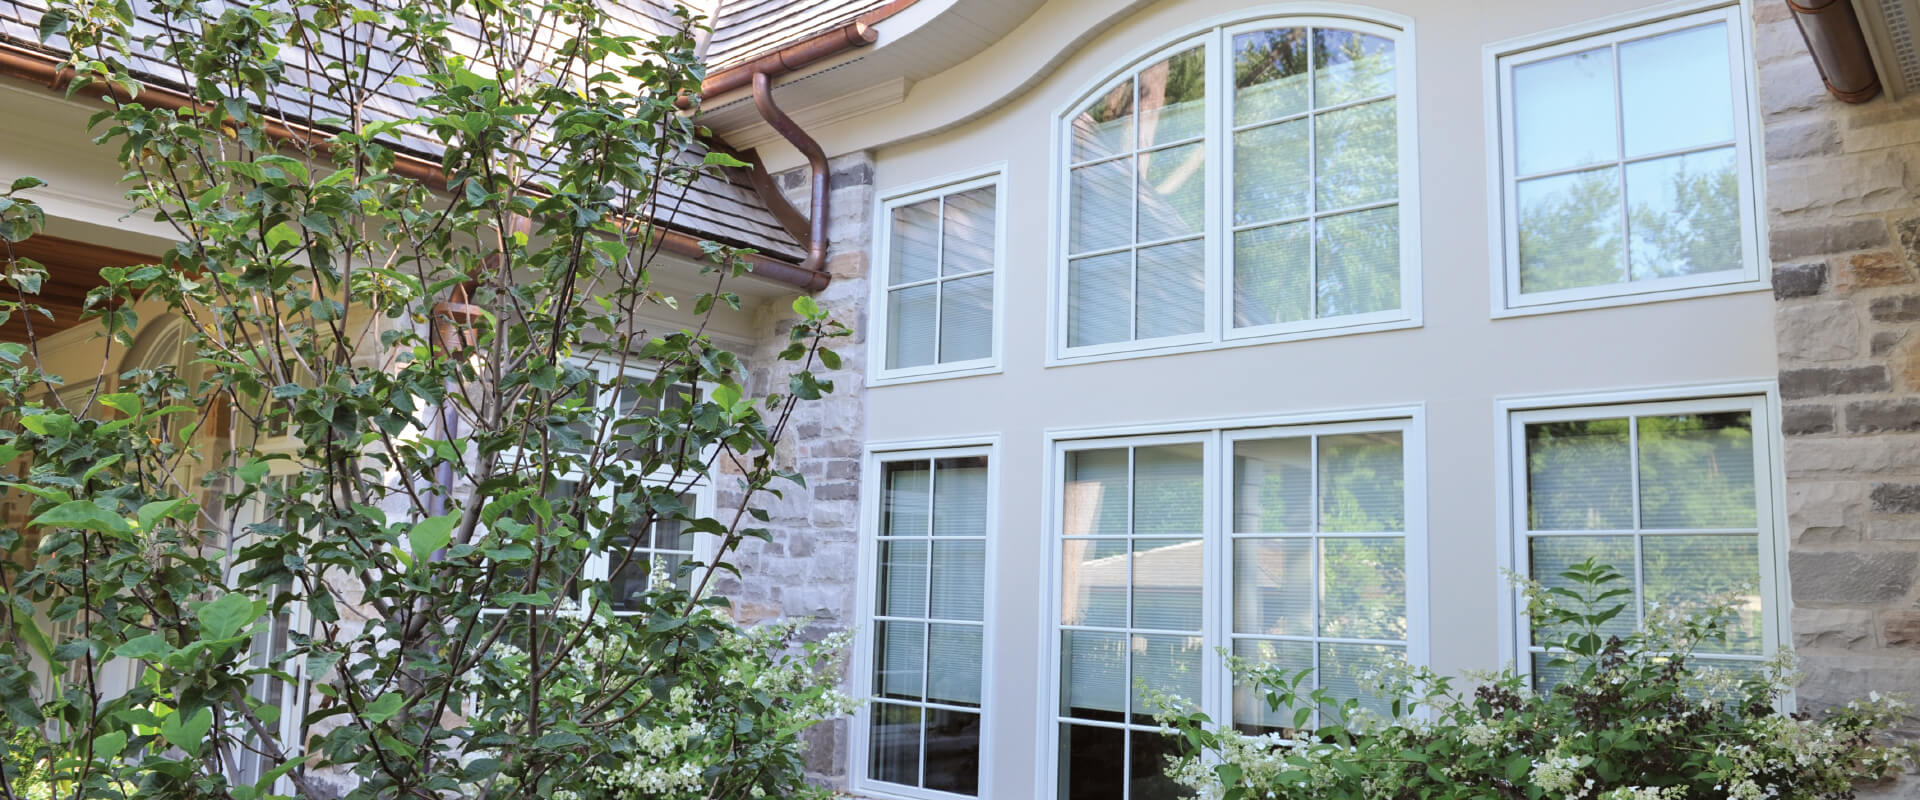 Heritage Push-Out Casements Exterior